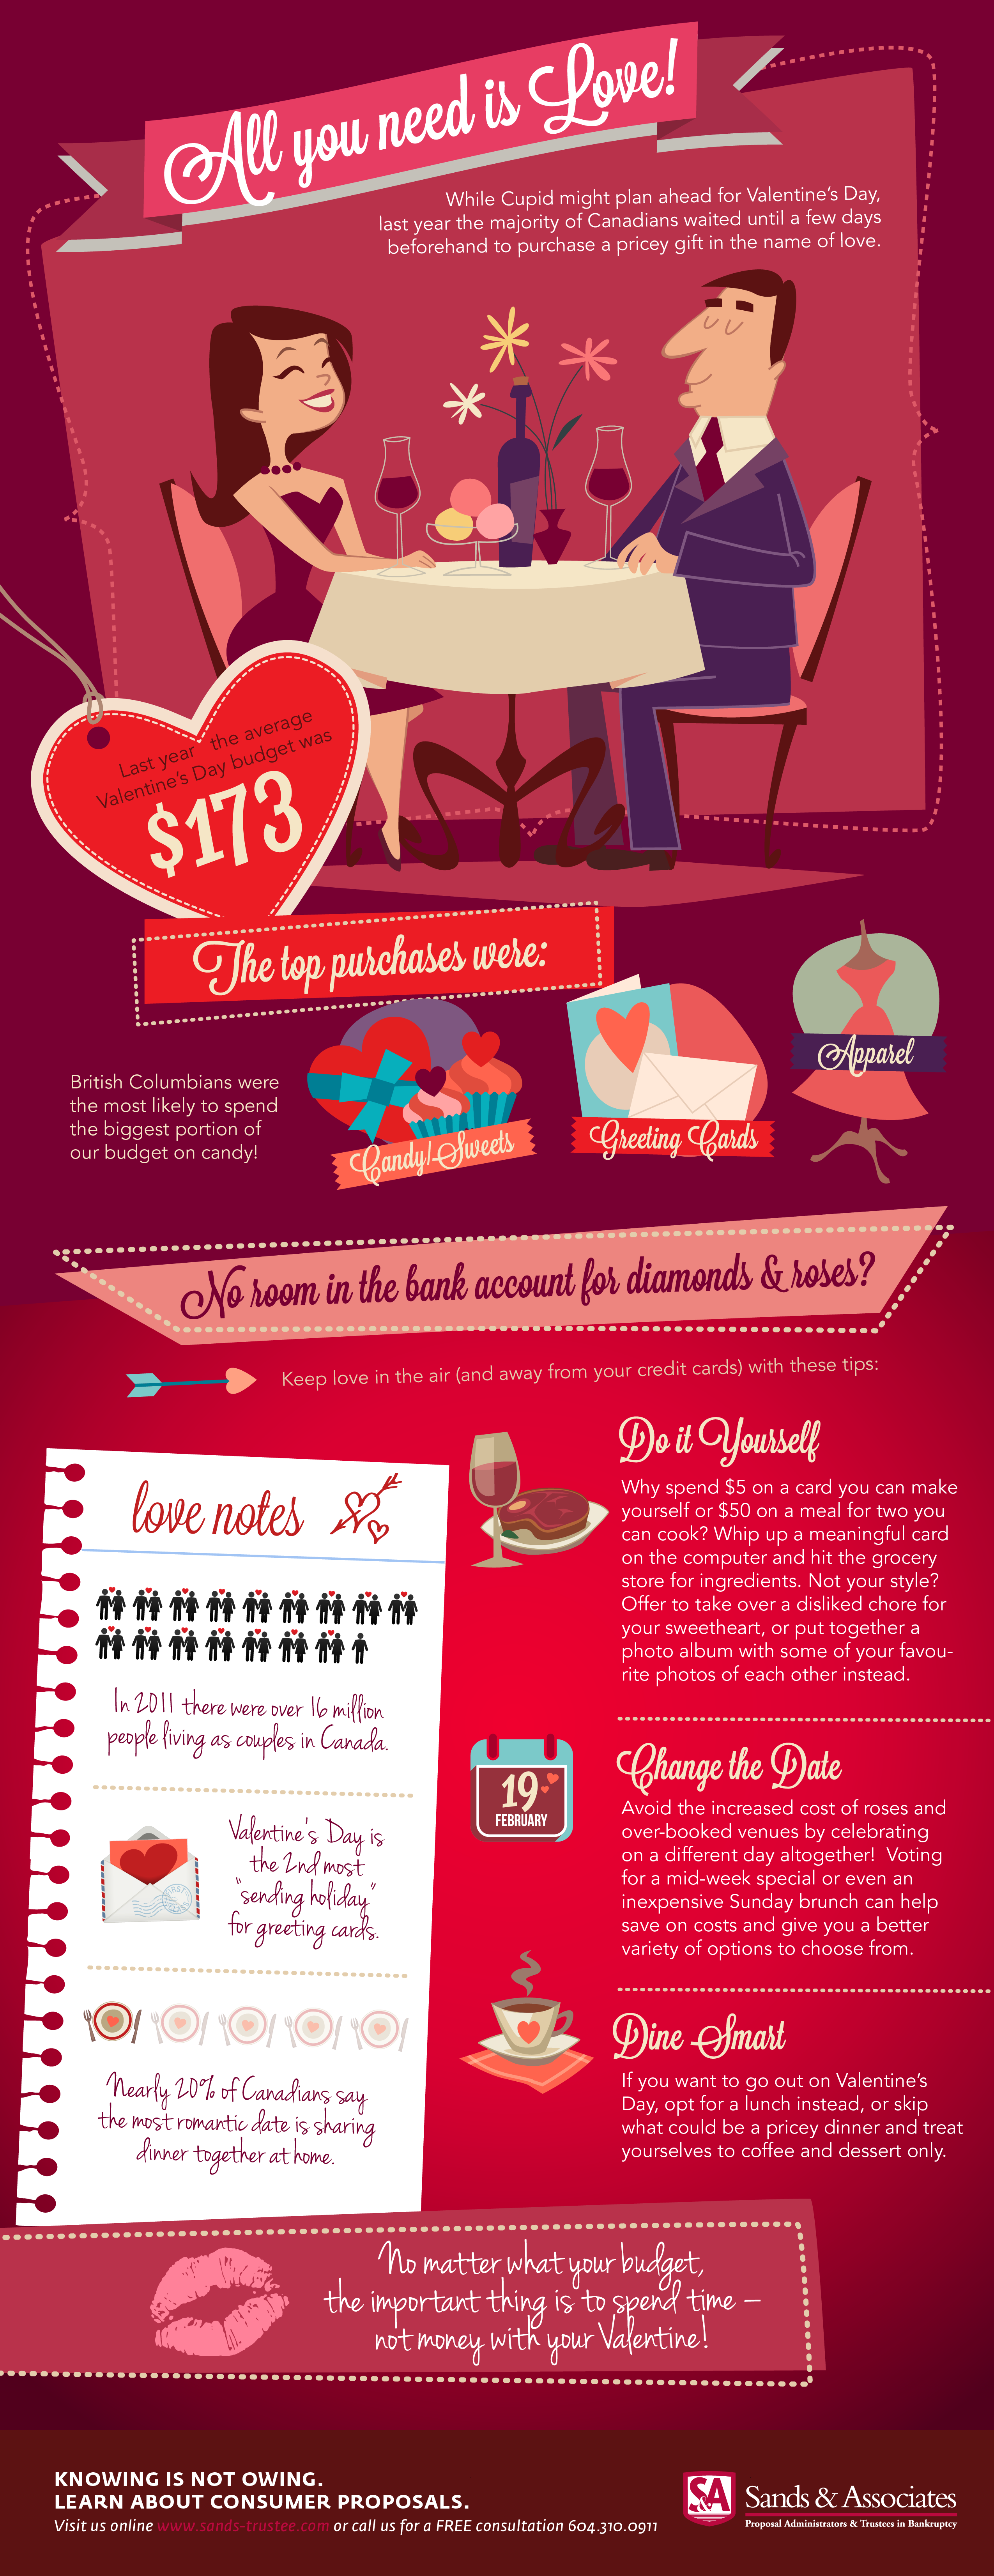 Sands & Associates Valentine's Day spending infographic